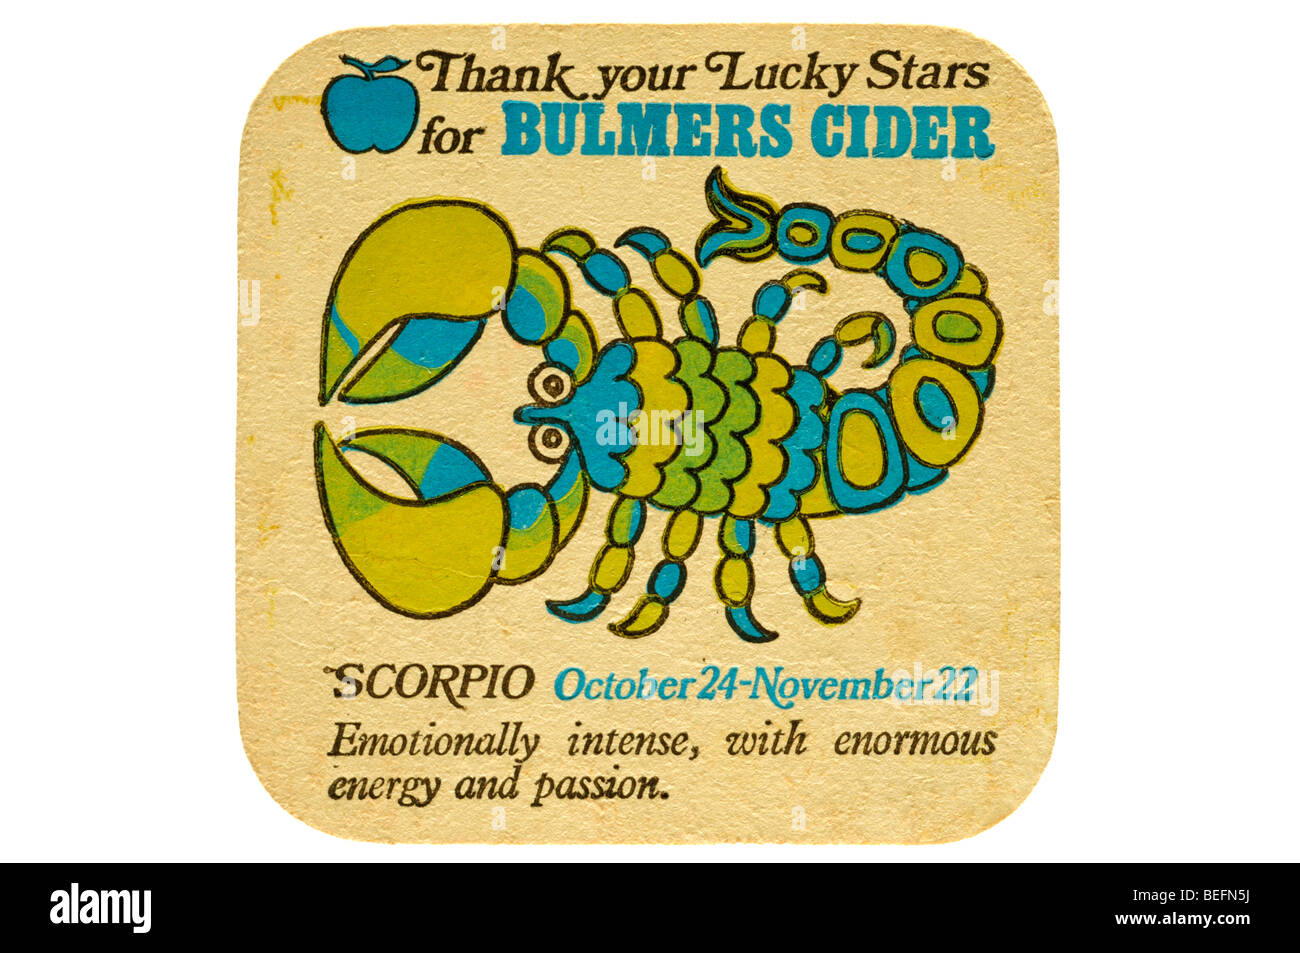 thank your lucky stars for bulmers cider scorpio october 24 movember 22 emotionally intense with enormous energy - Stock Image